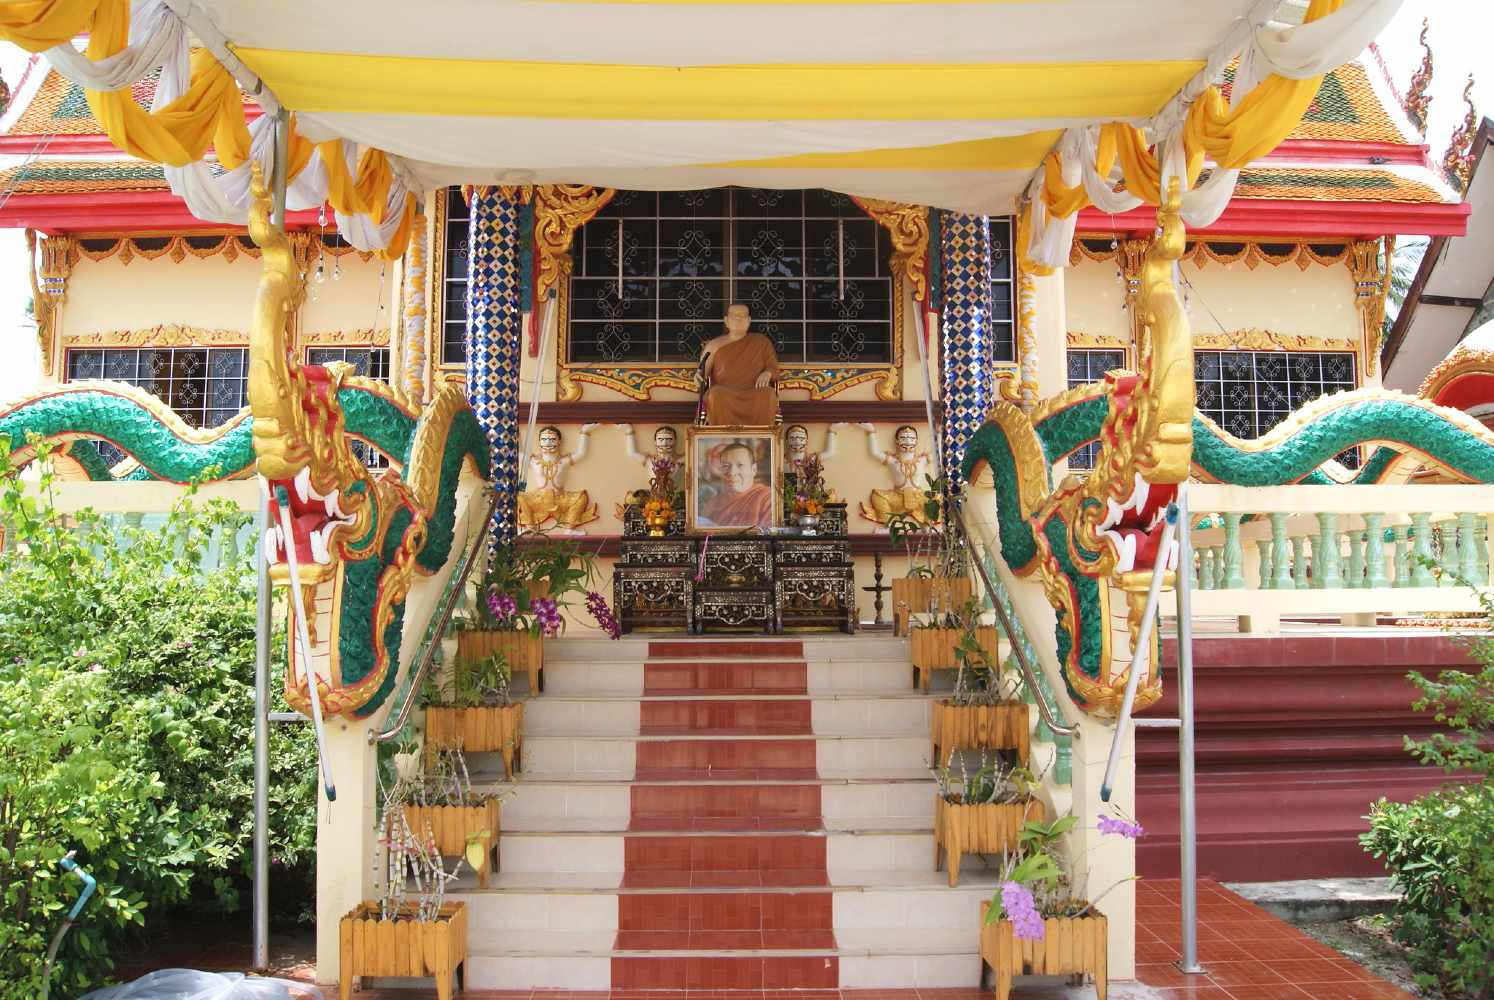 Entrance with stairs and dragons along the railings of part of the Wat Plai Laem temple complex on Koh Samui.